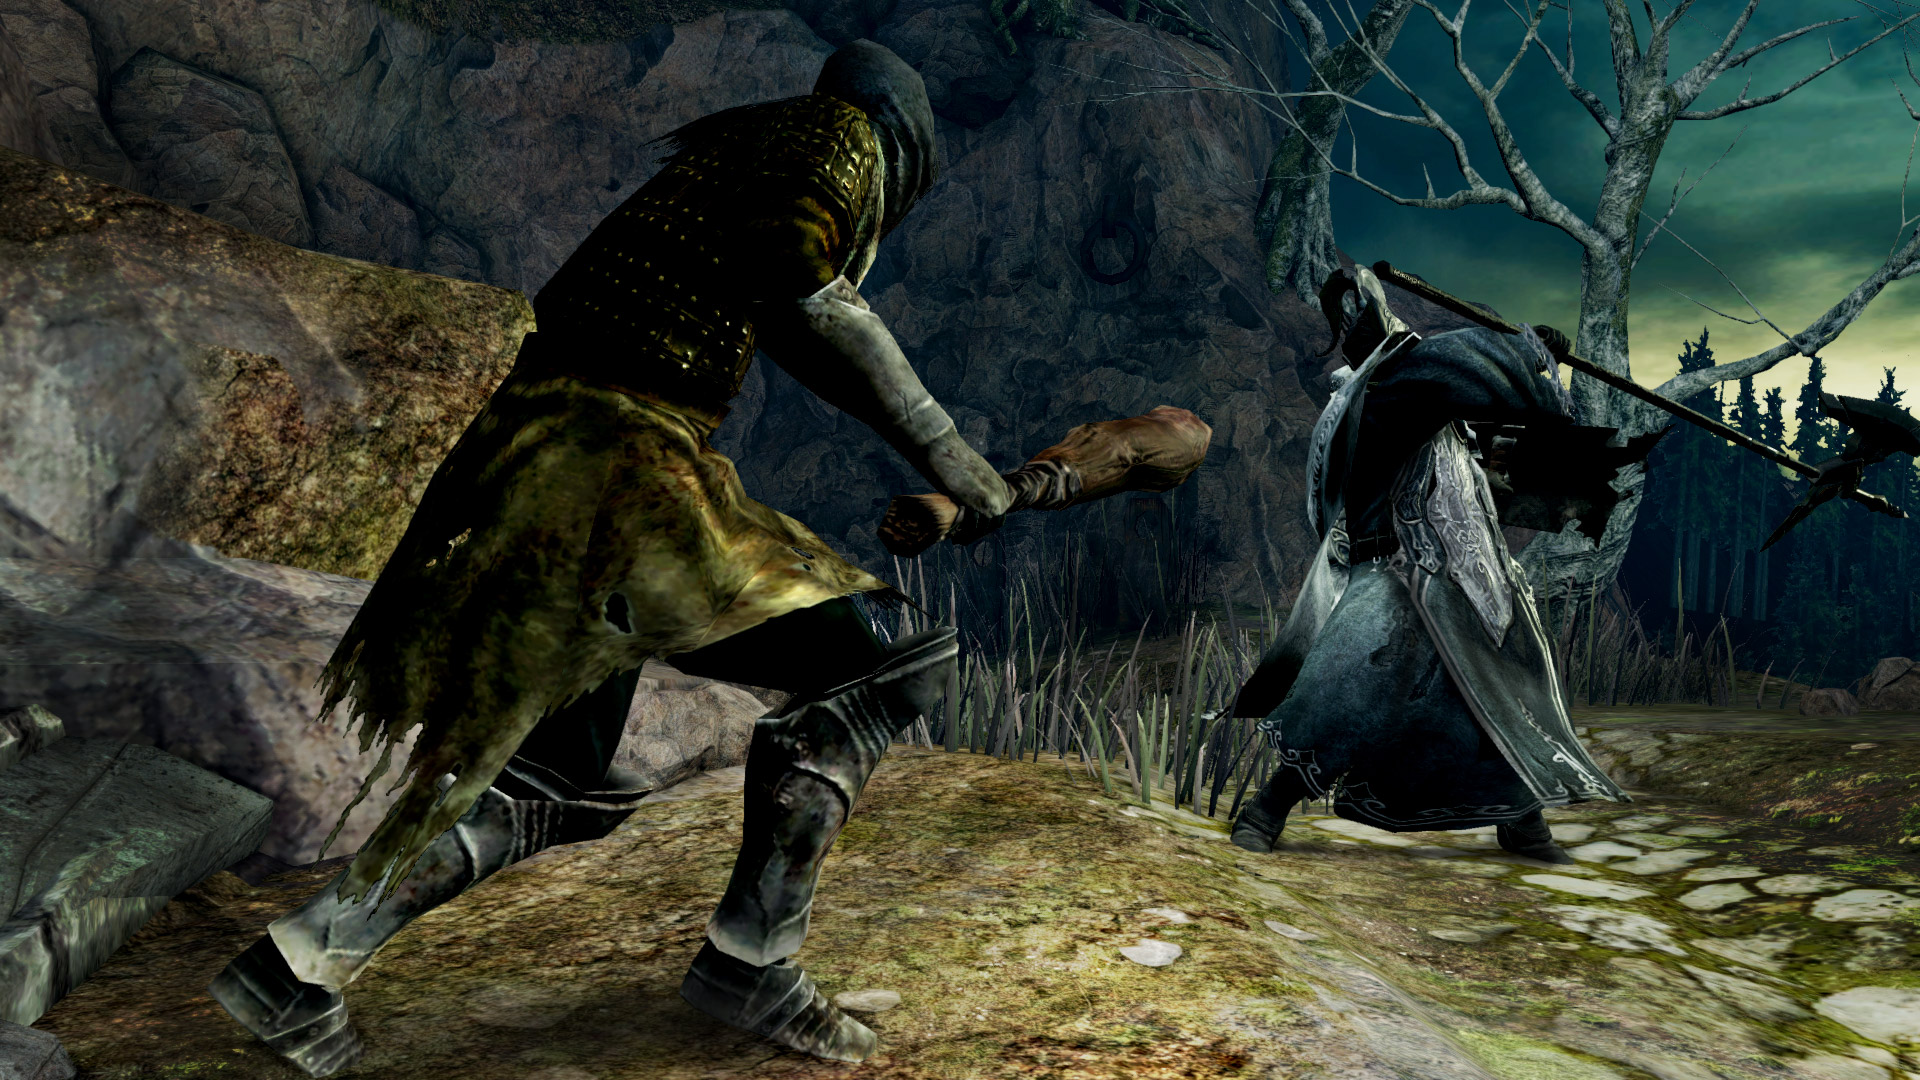 Dark Souls 2 Beta Prepare To Preview: How Dark Souls 2 Will Make Life Even Harder